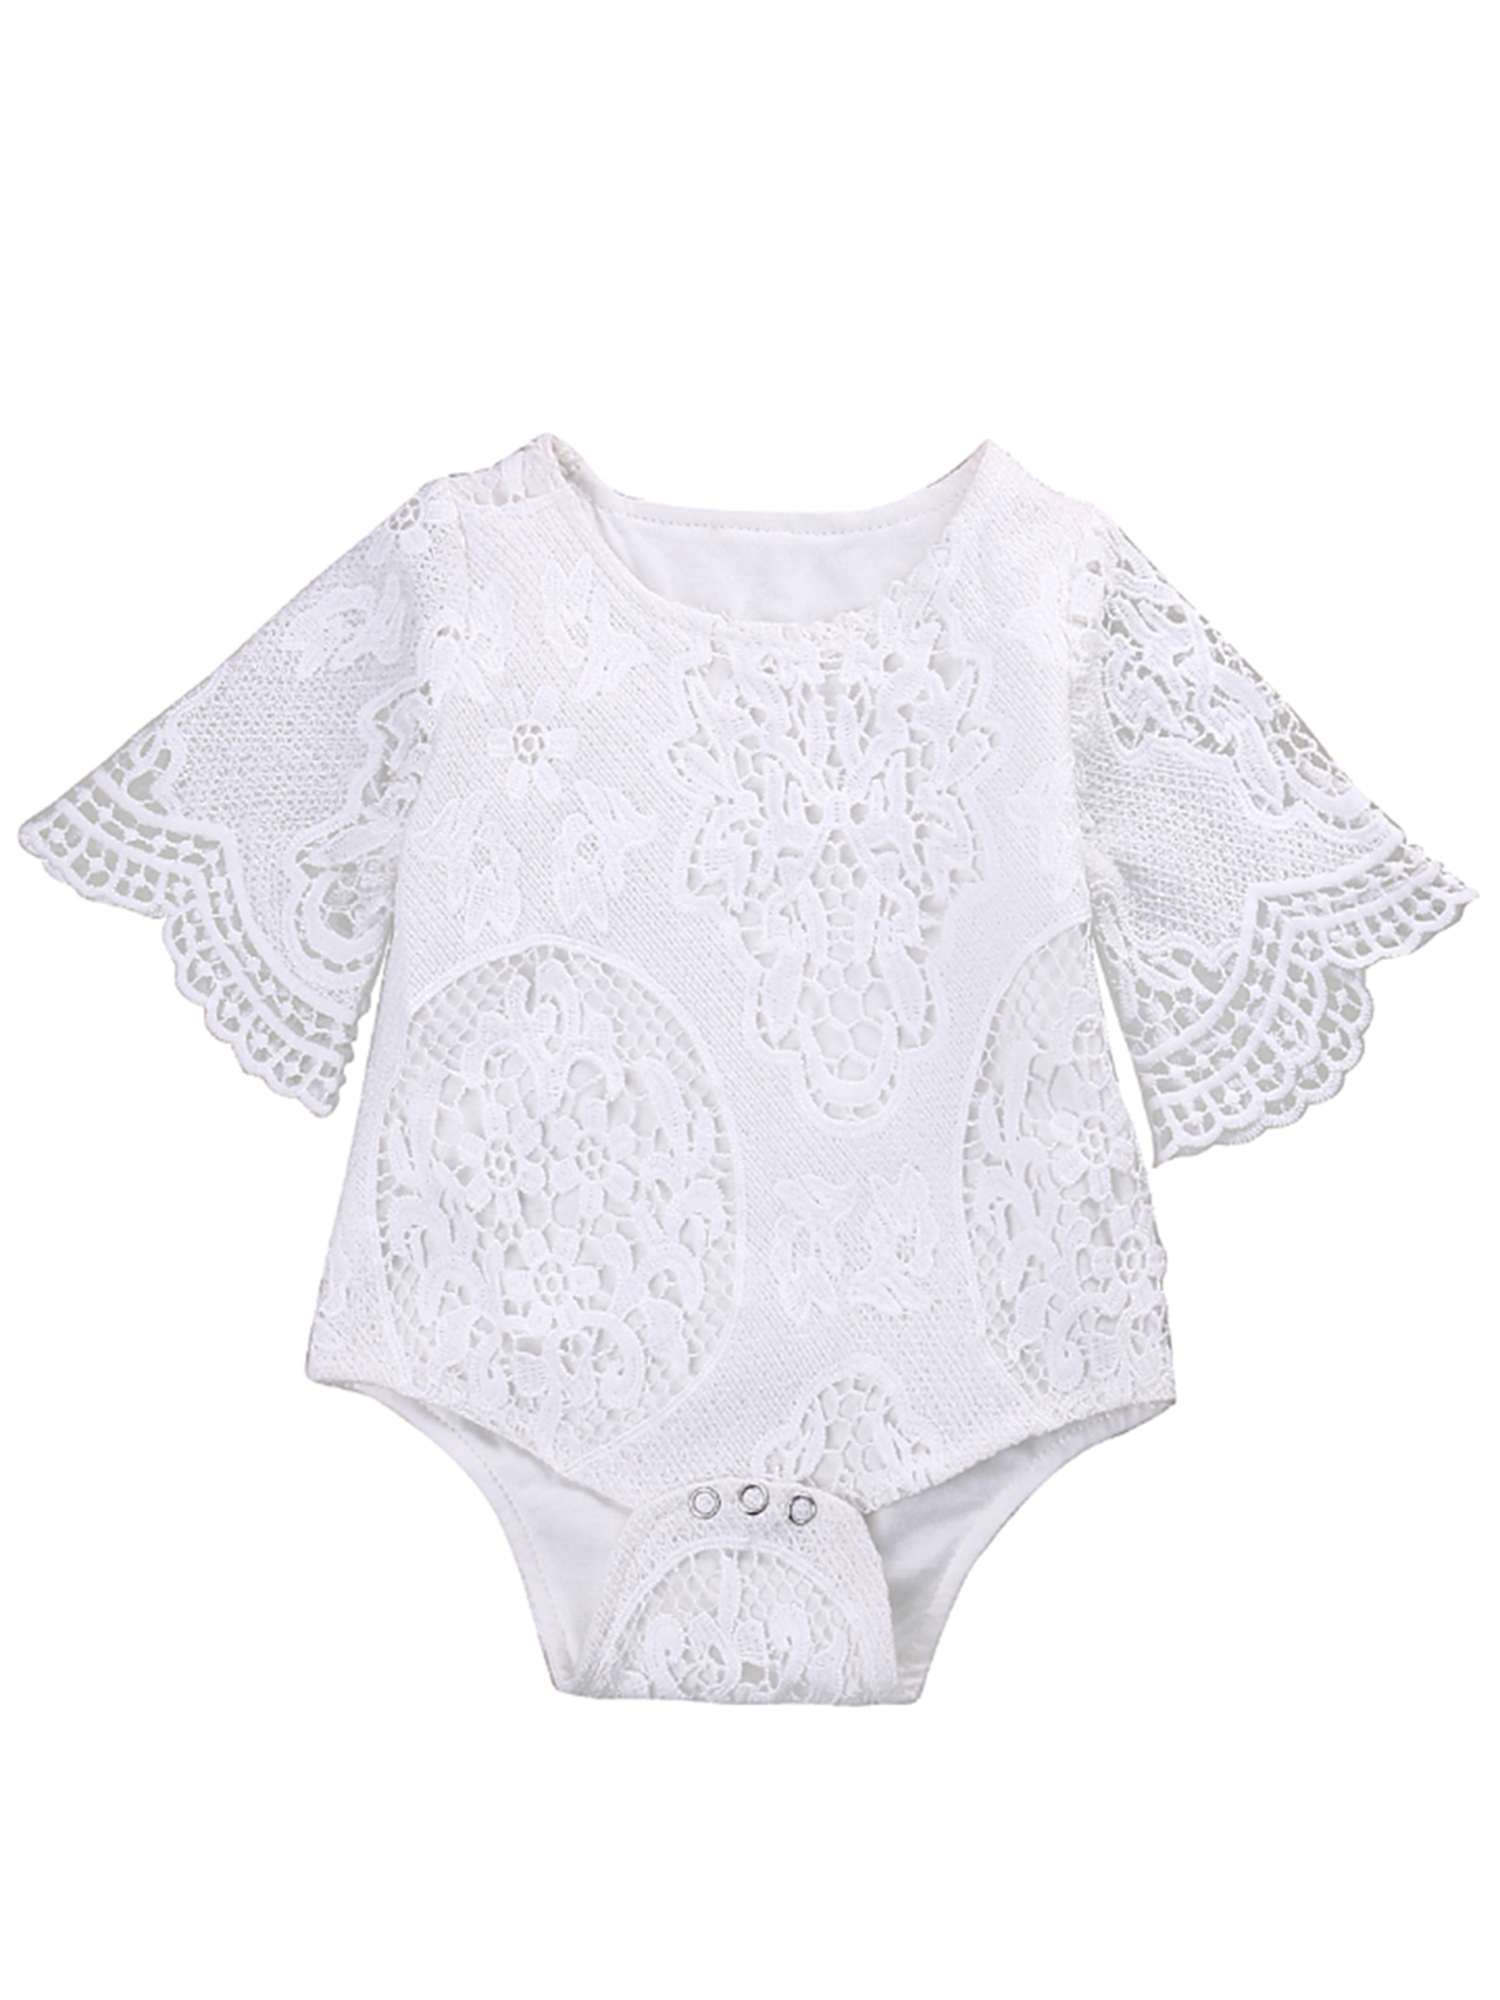 White /& Black Cats Fall in Love Boys /& Girls Black Short Sleeve Romper Climbing Clothes for 0-24 Months